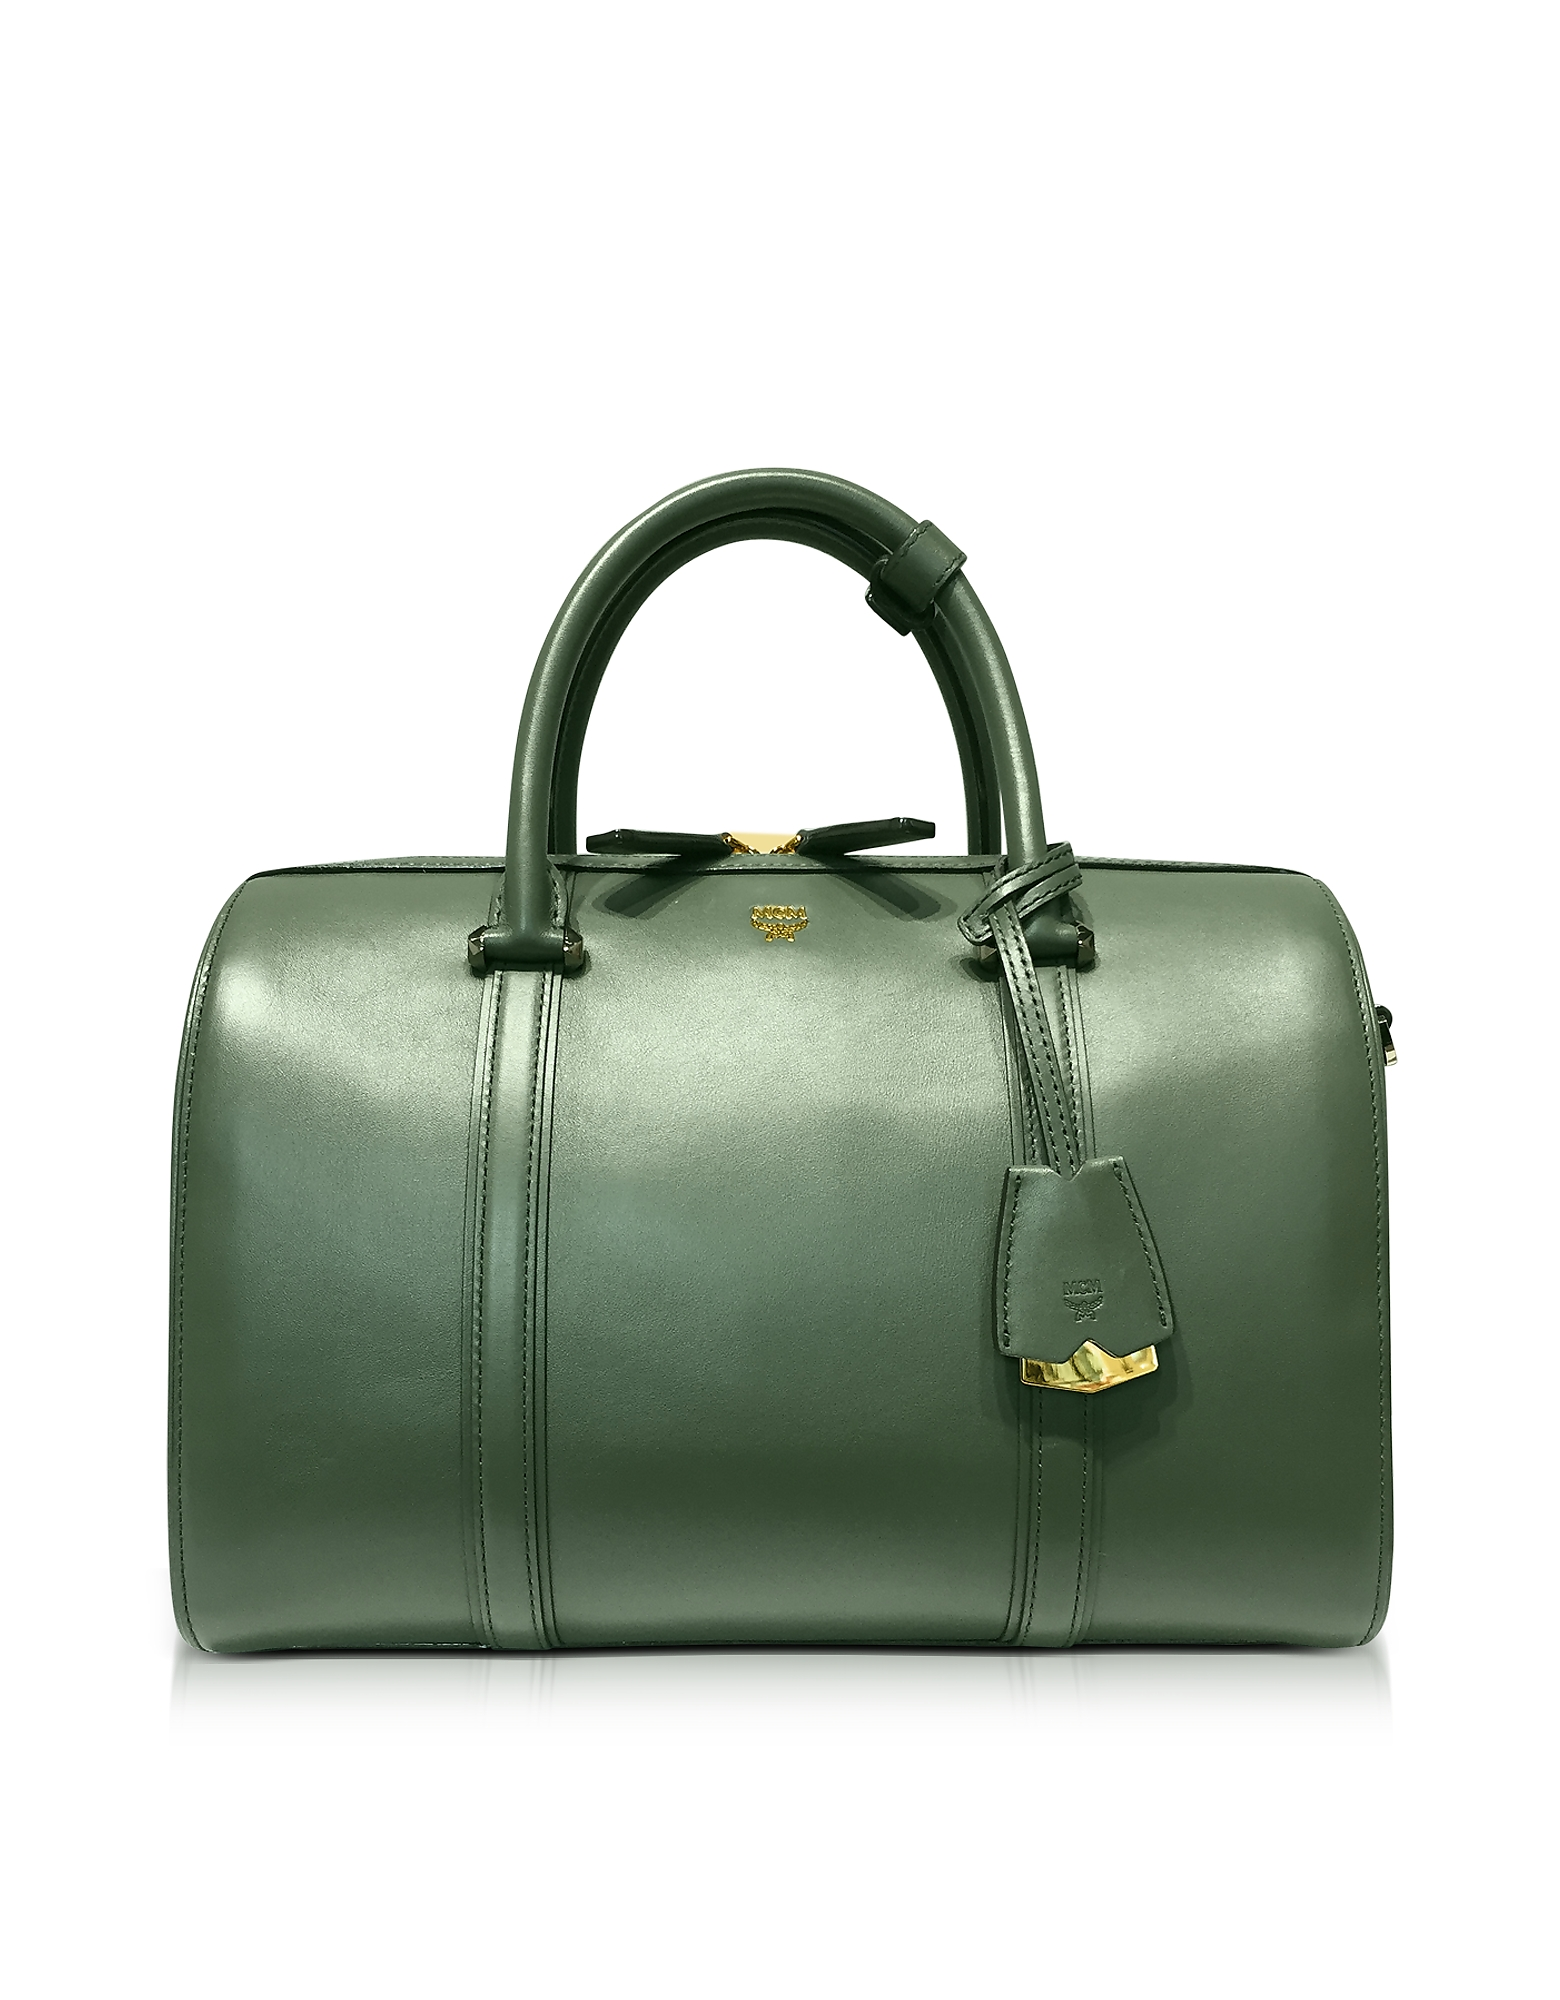 MCM Handbags, Large Loden Green Signature Smooth Leather Boston Bag